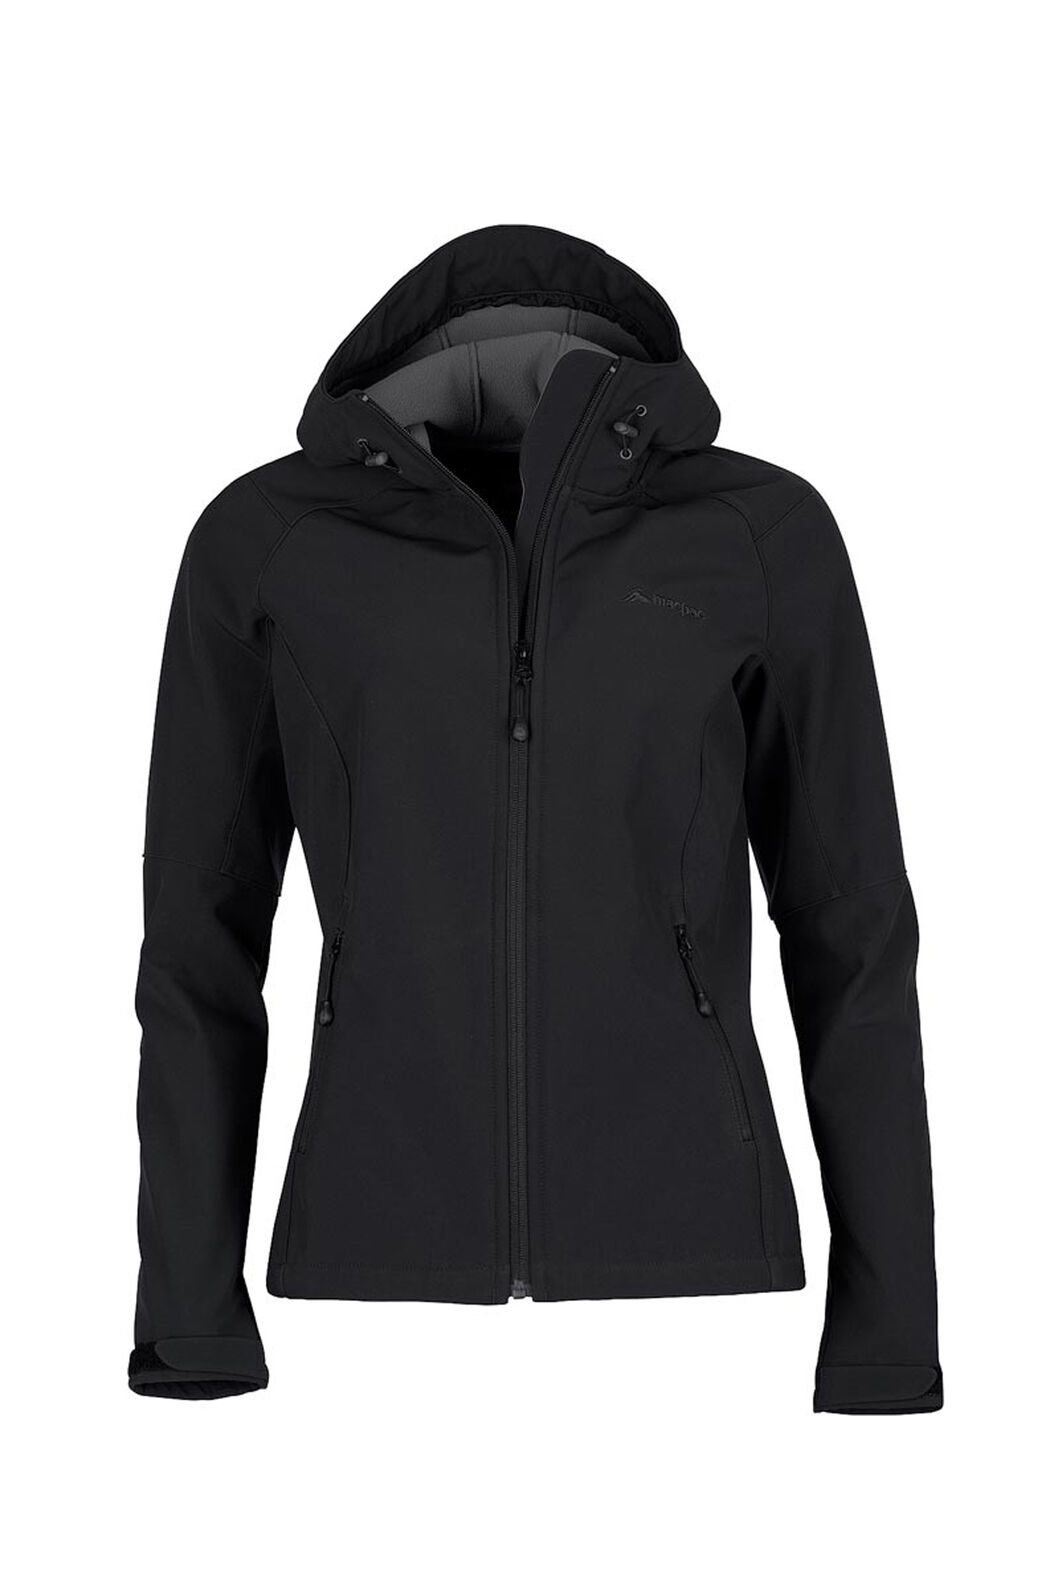 Macpac Sabre Hooded Softshell Jacket — Women's, Black, hi-res